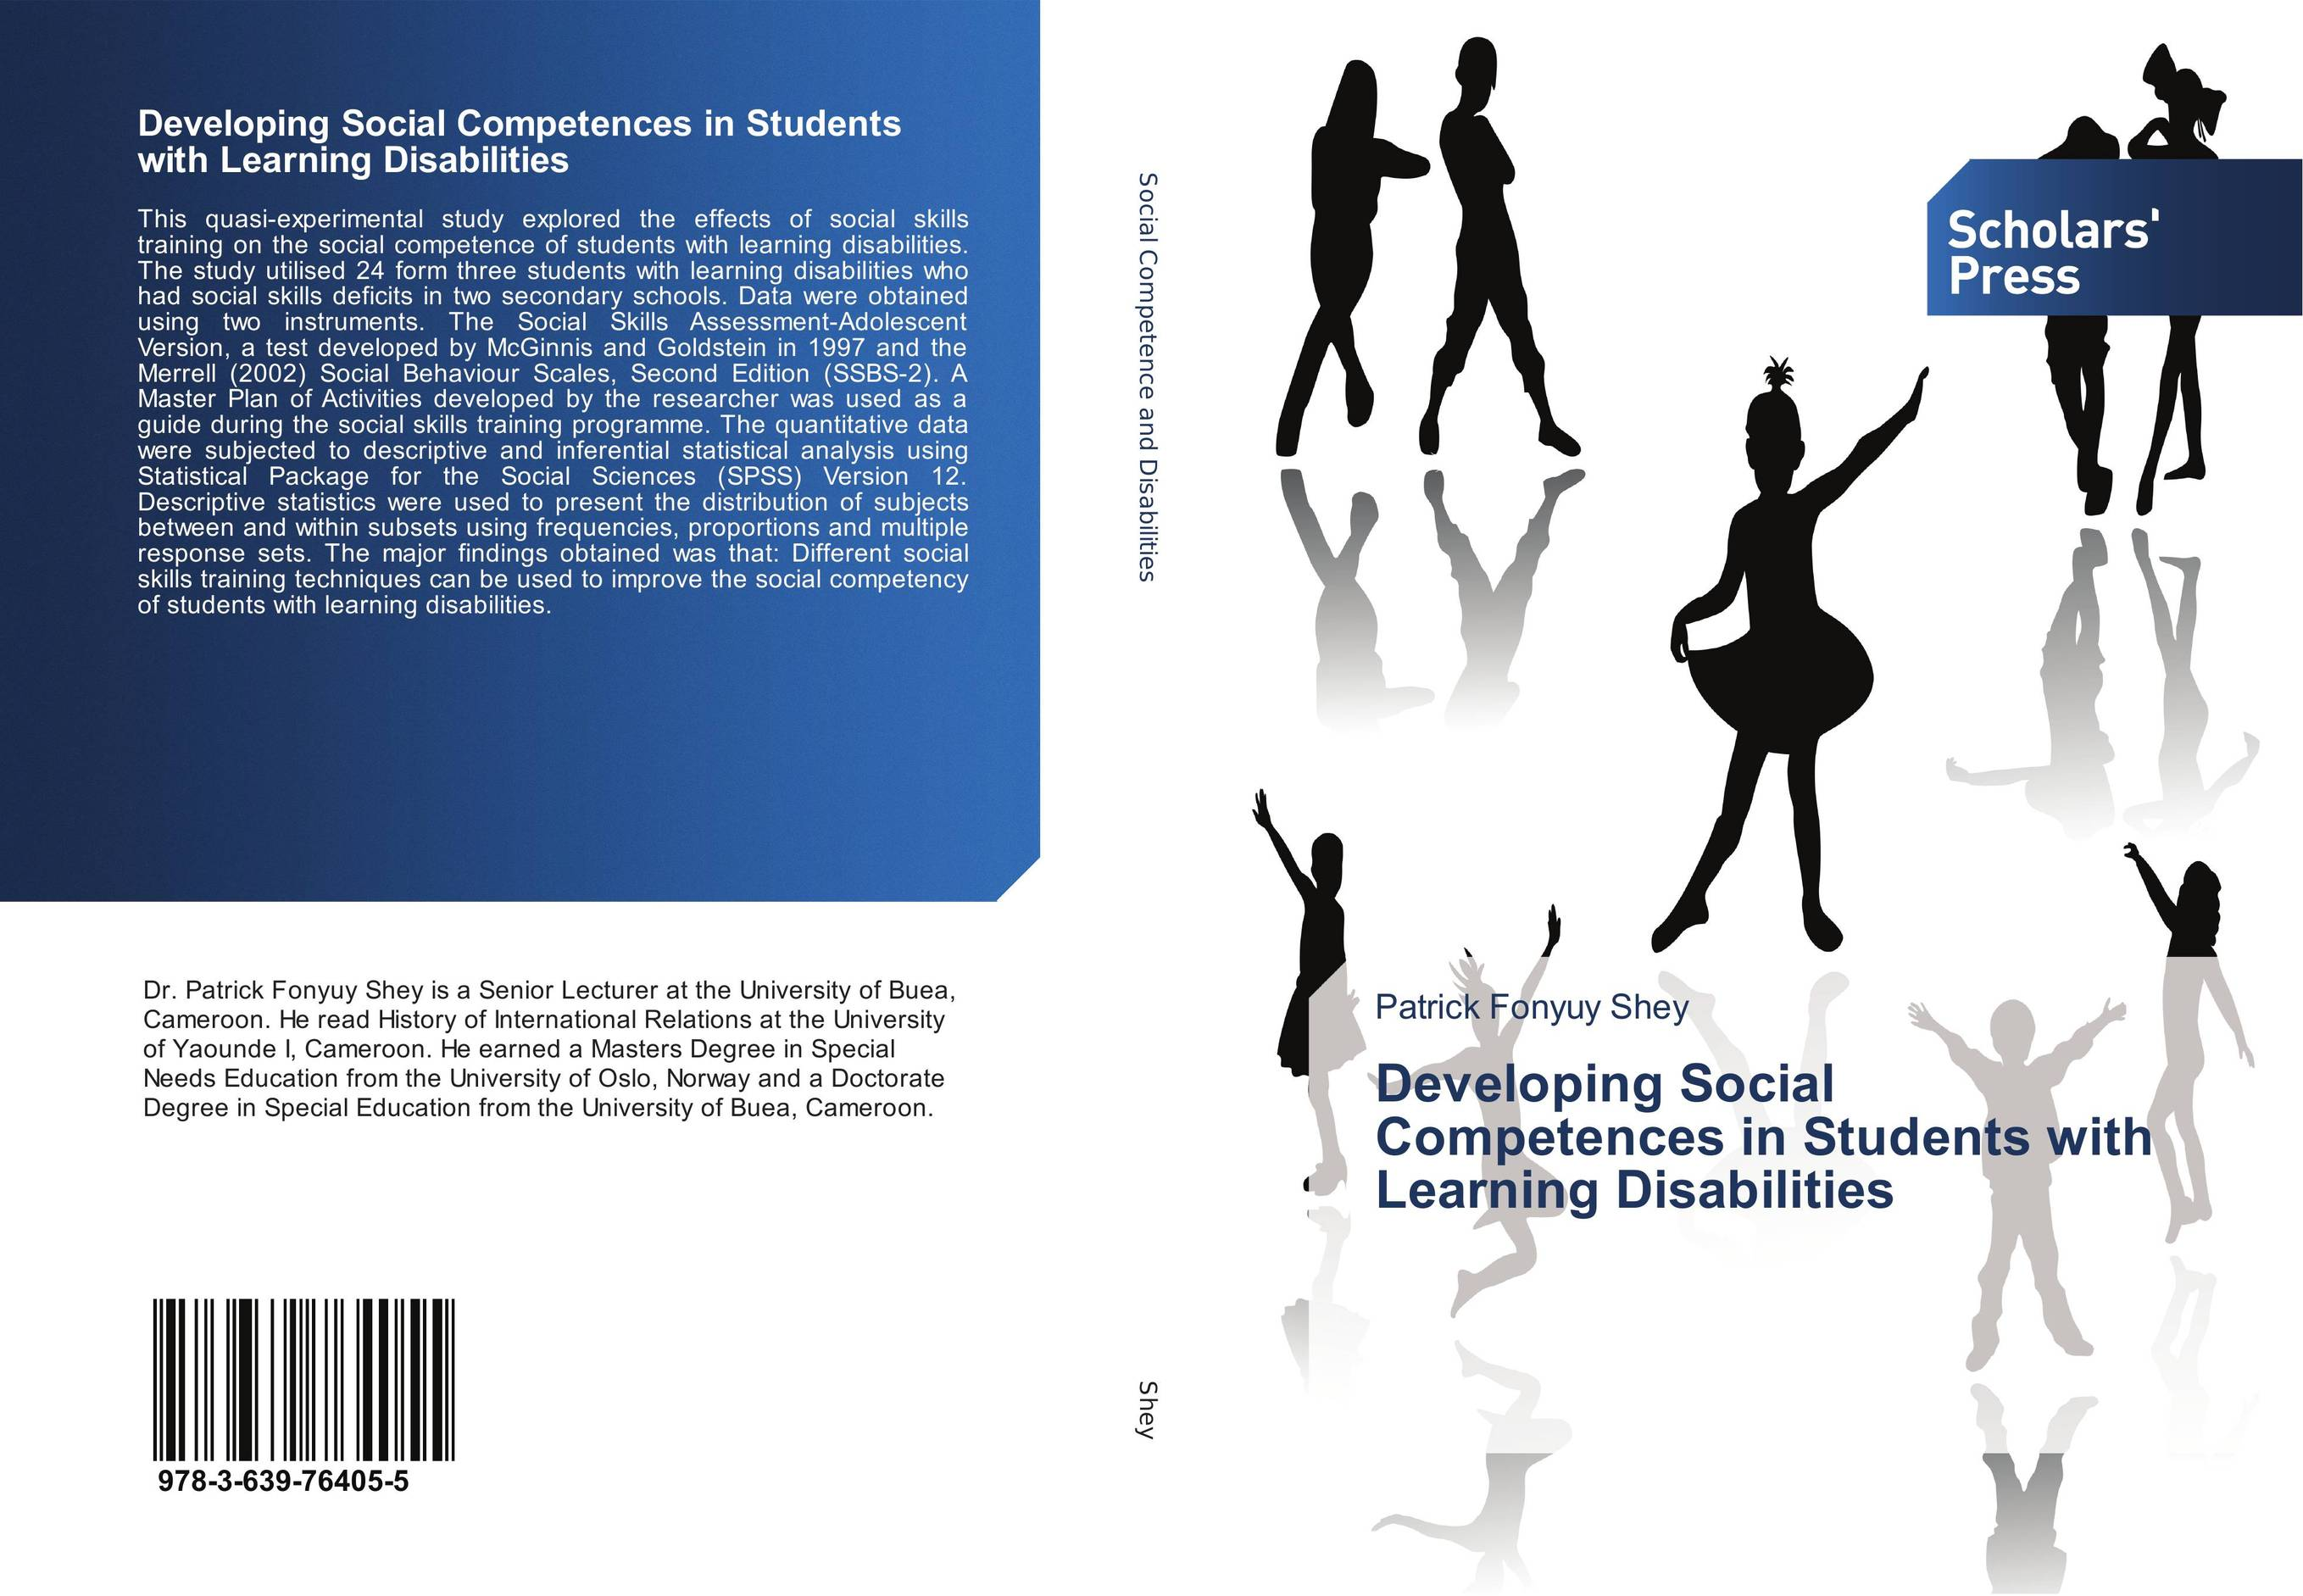 Developing Social Competences in Students with Learning Disabilities катушка для спиннинга agriculture fisheries and magic with disabilities 13